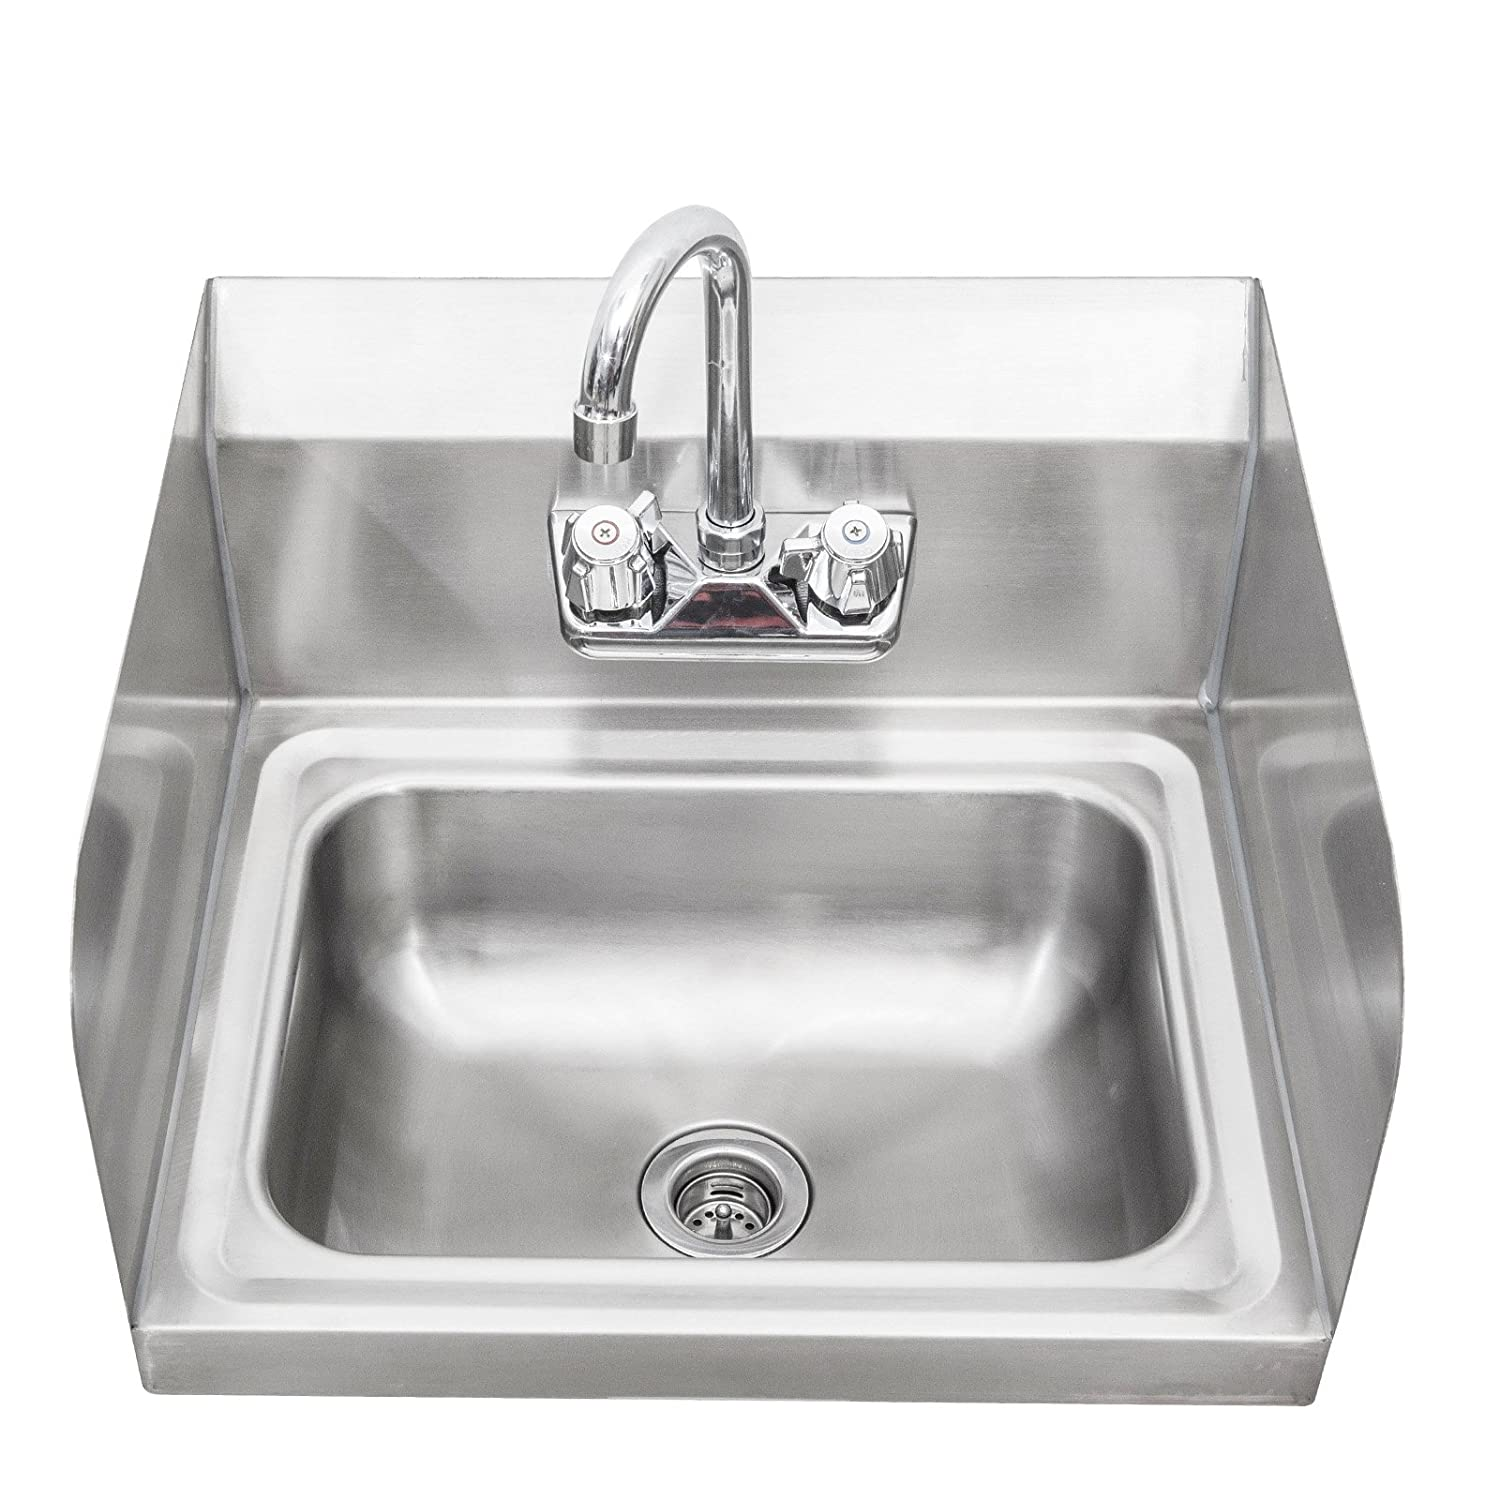 Sapphire Manufacturing NSF Wall-Mount Stainless Steel Hand Sink 17 Inch x 15 Inch x 14 Inch High SMHS-01